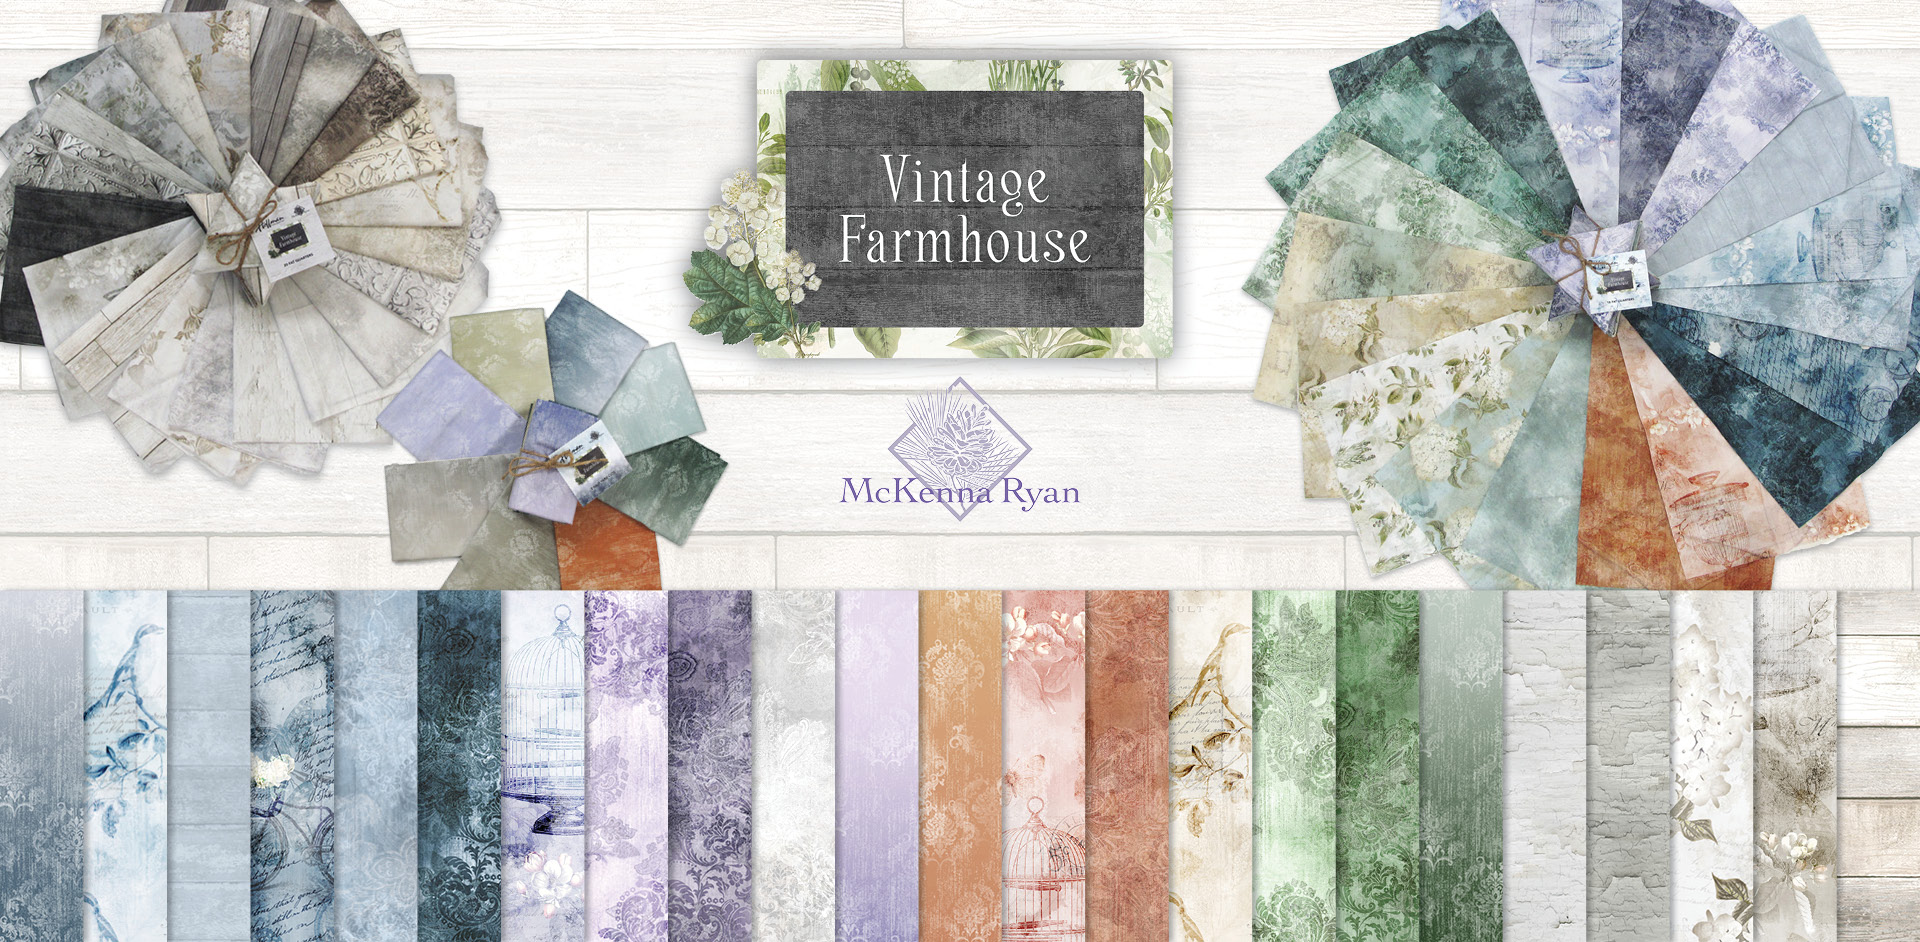 08-Vintage Farmhouse by Mckenna Ryan